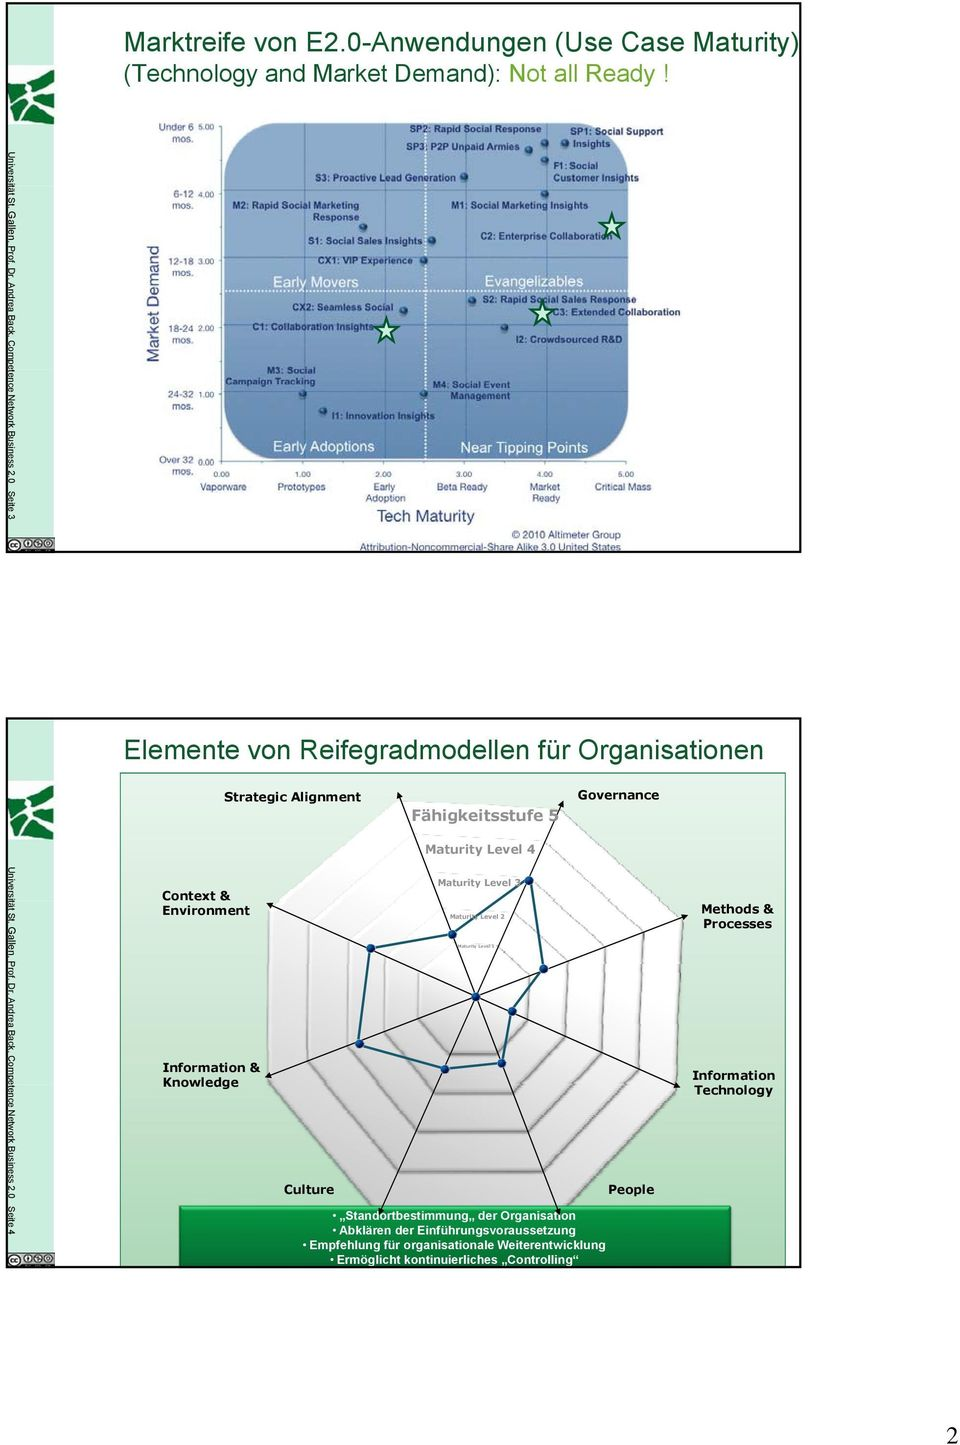 0 Seite 4 Elemente von Reifegradmodellen für Organisationen Context & Environment Information & Knowledge Strategic Alignment Culture Fähigkeitsstufe 5 Maturity Level 4 Maturity